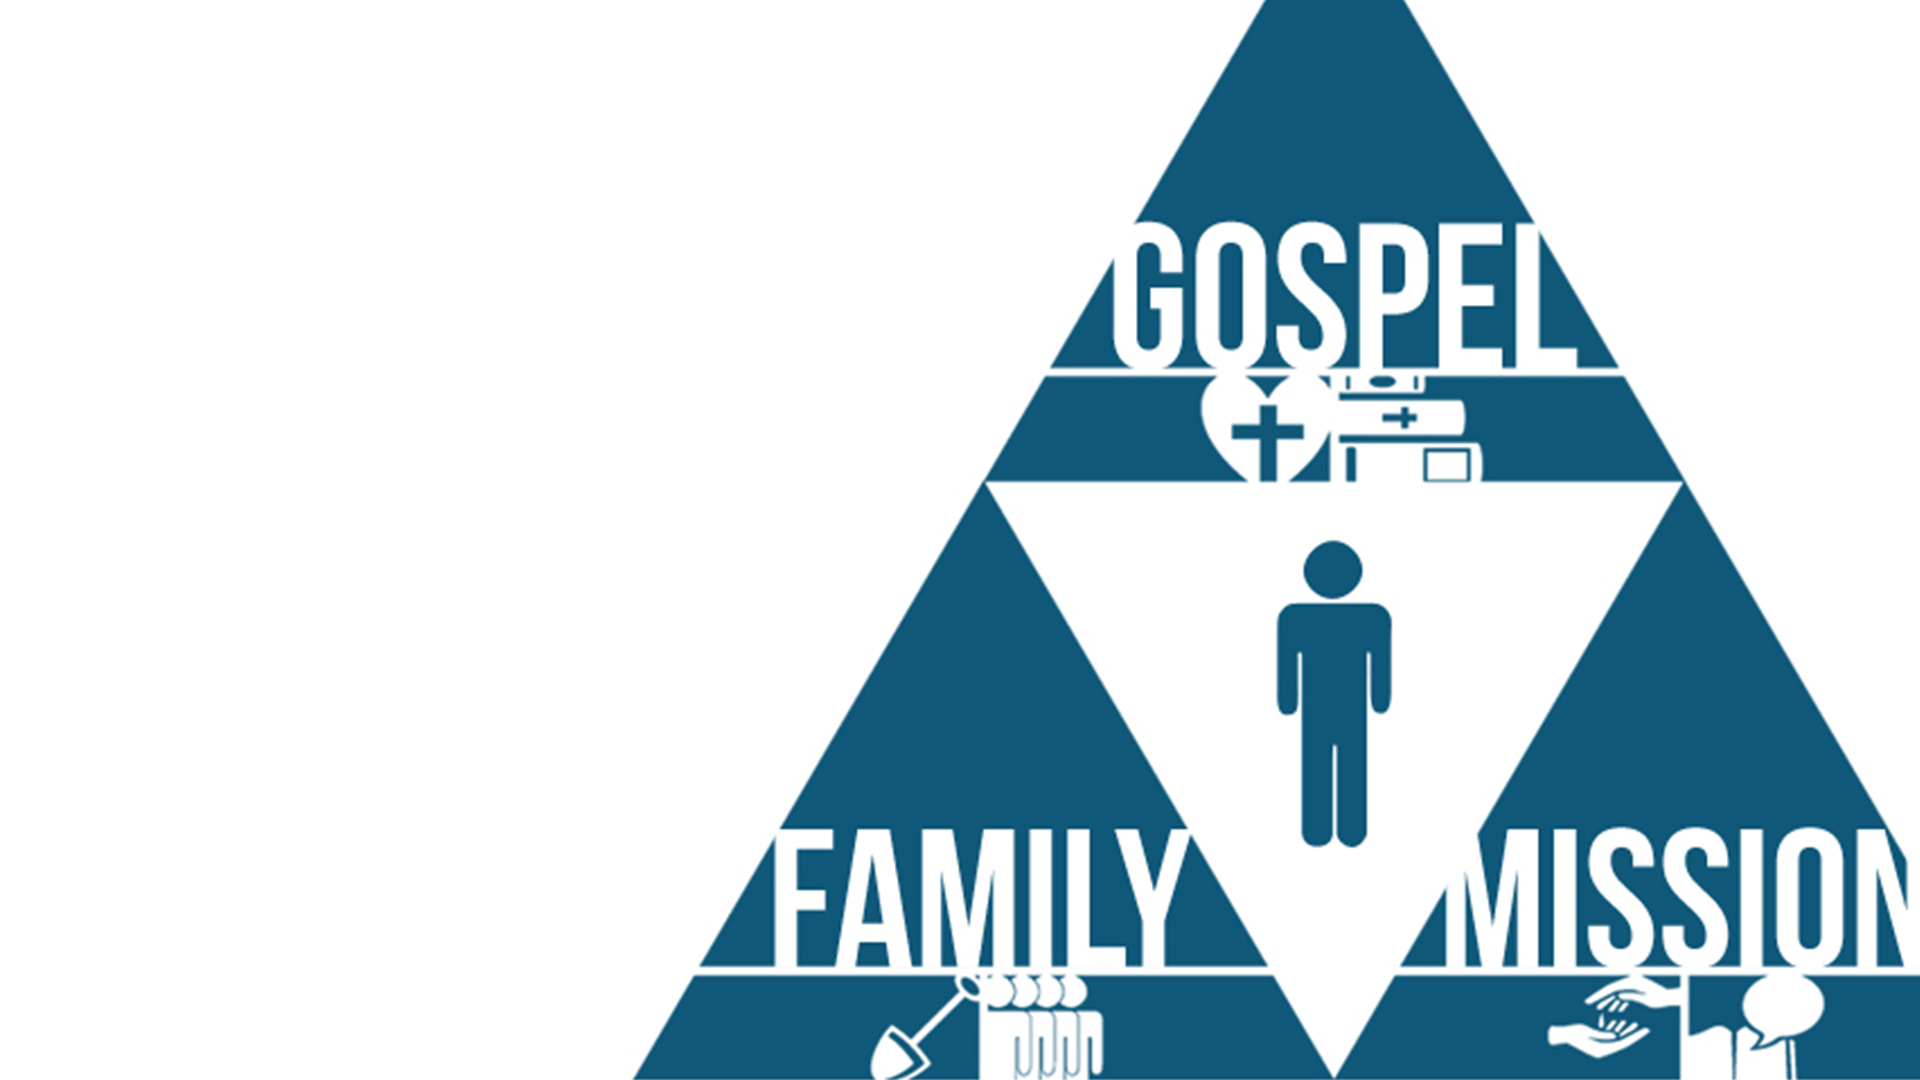 Gospel Family Mission.jpg